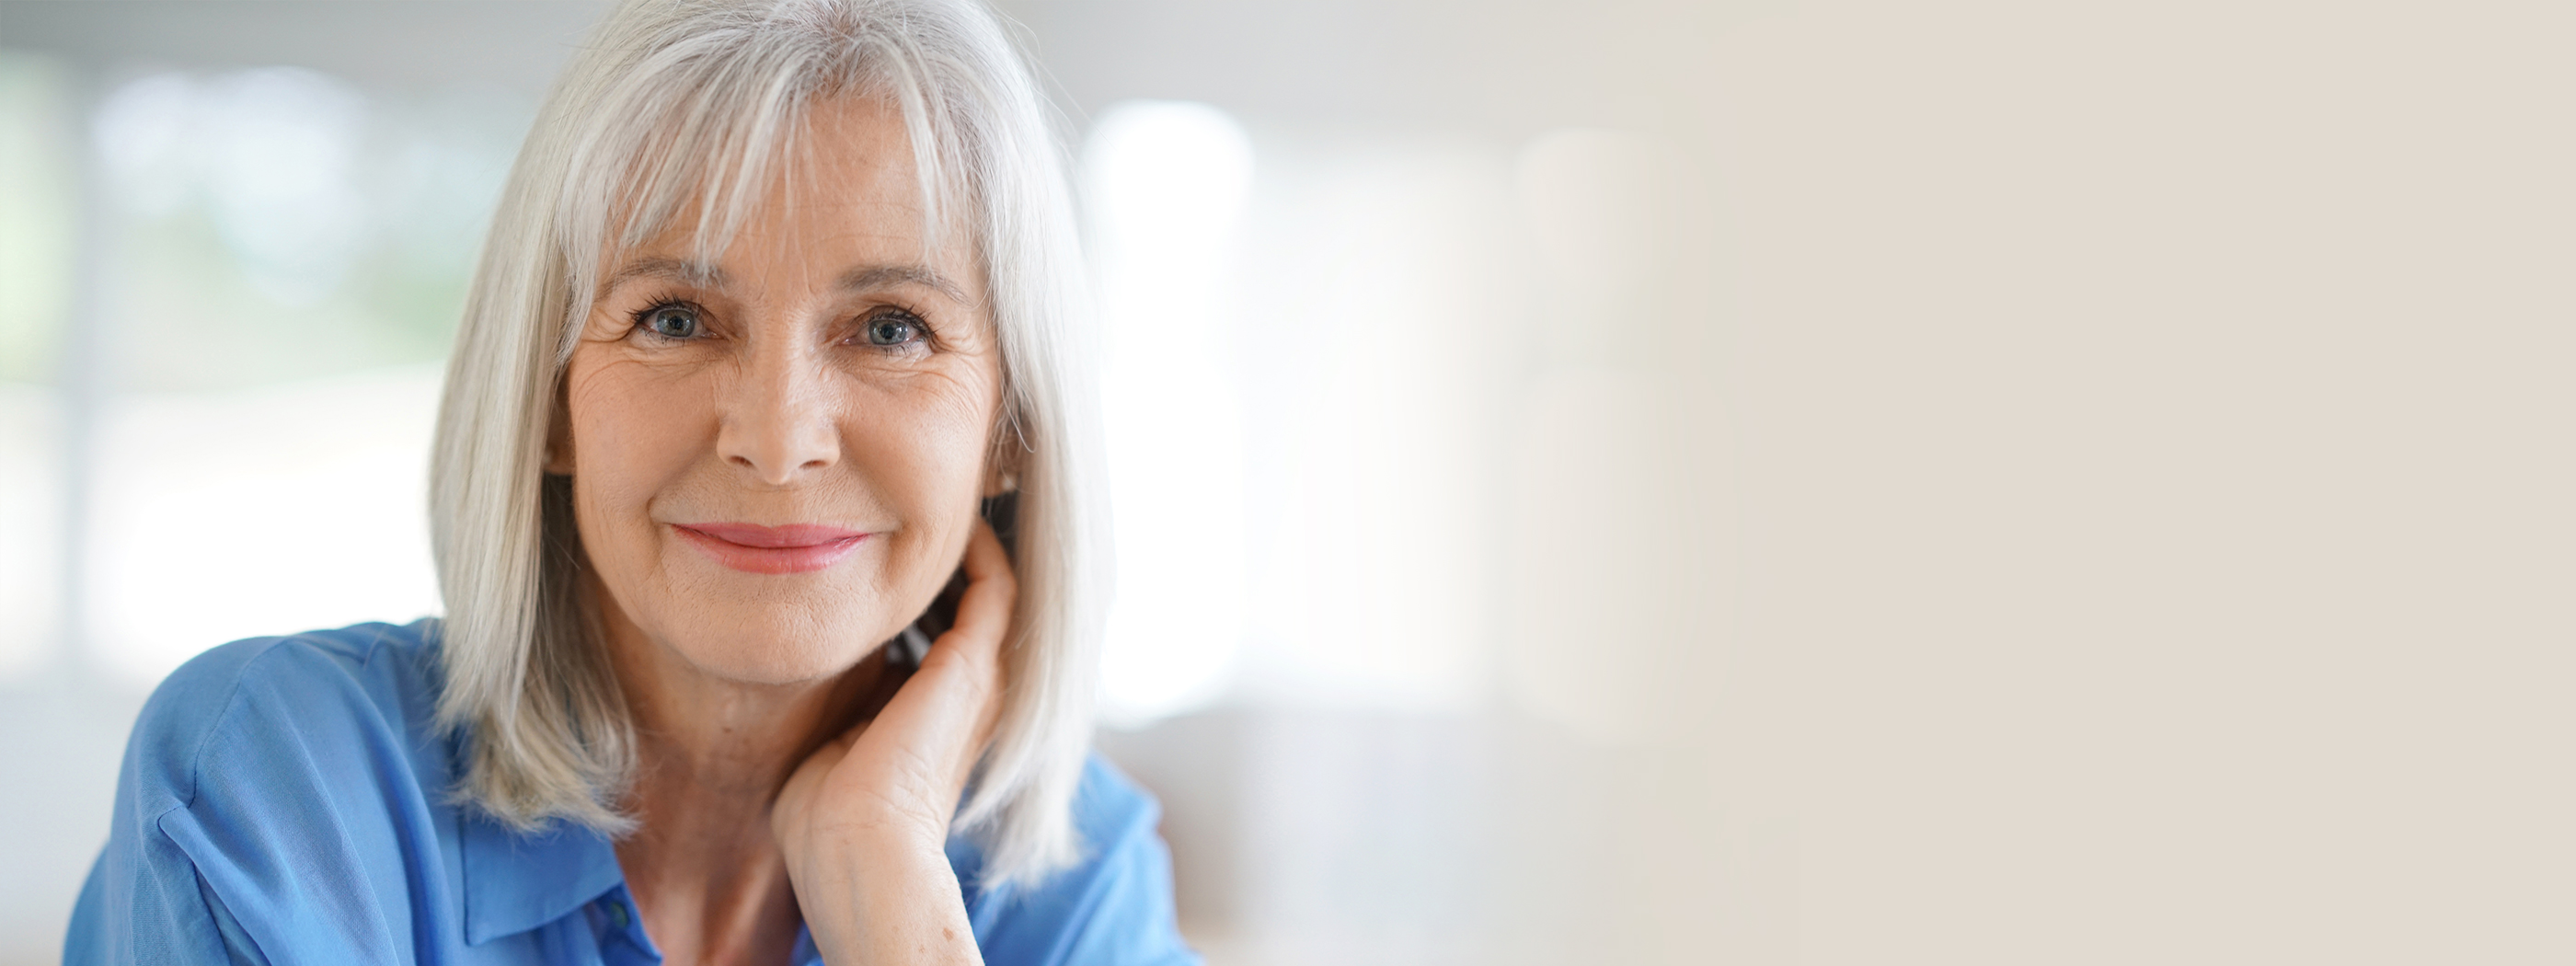 Attractive older woman with white hair smiling